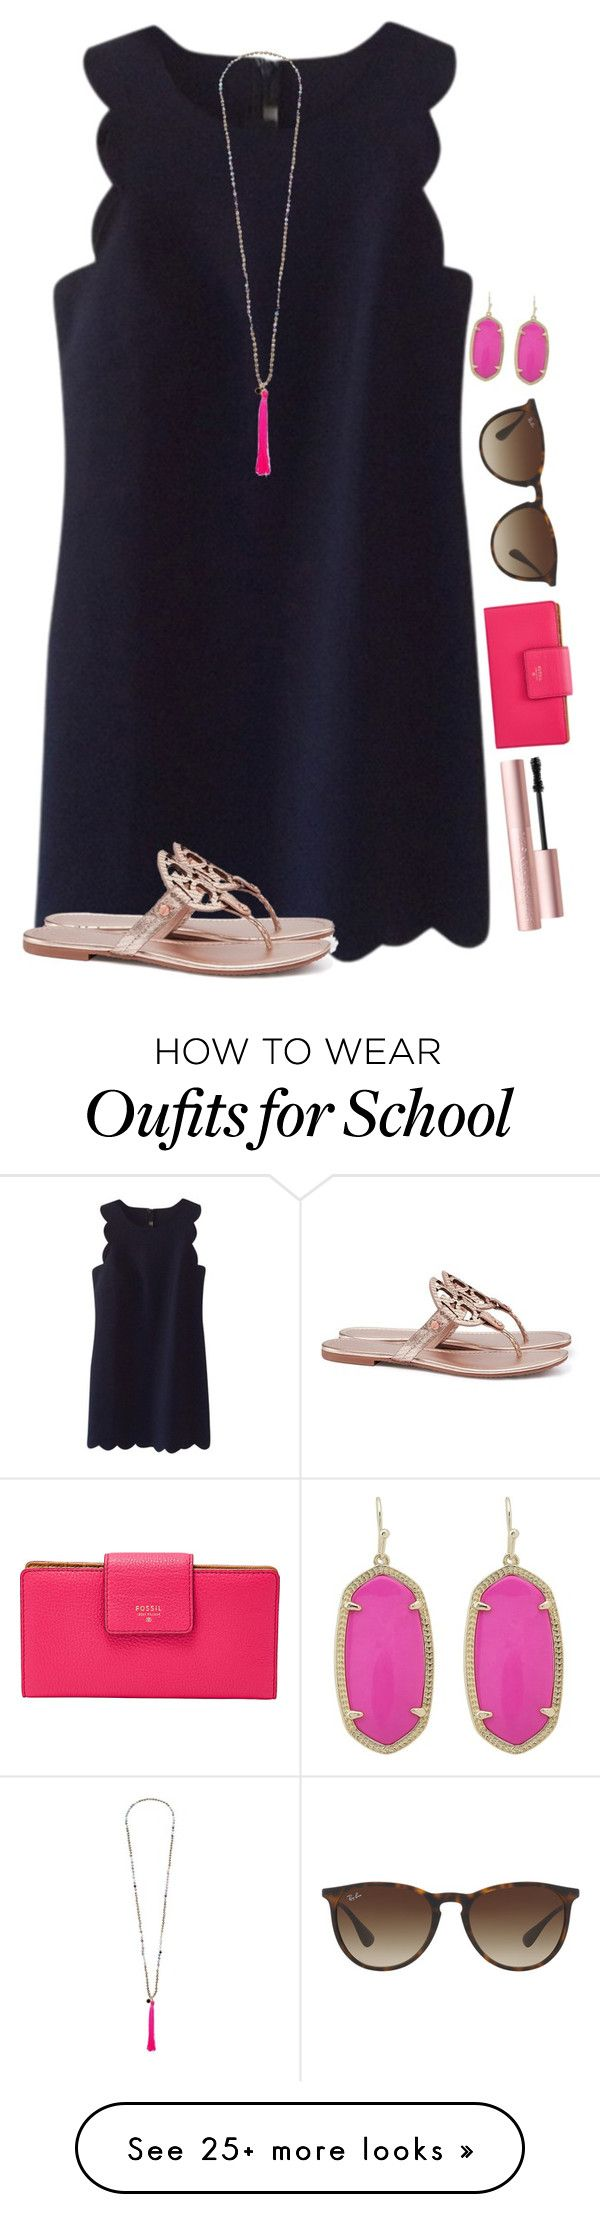 Day 3: school dance by blonde-prepster on Polyvore featuring J.Crew, Tory Burch, French Connection, Too Faced Cosmetics, FOSSIL, Ray-Ban and Kendra Scott}